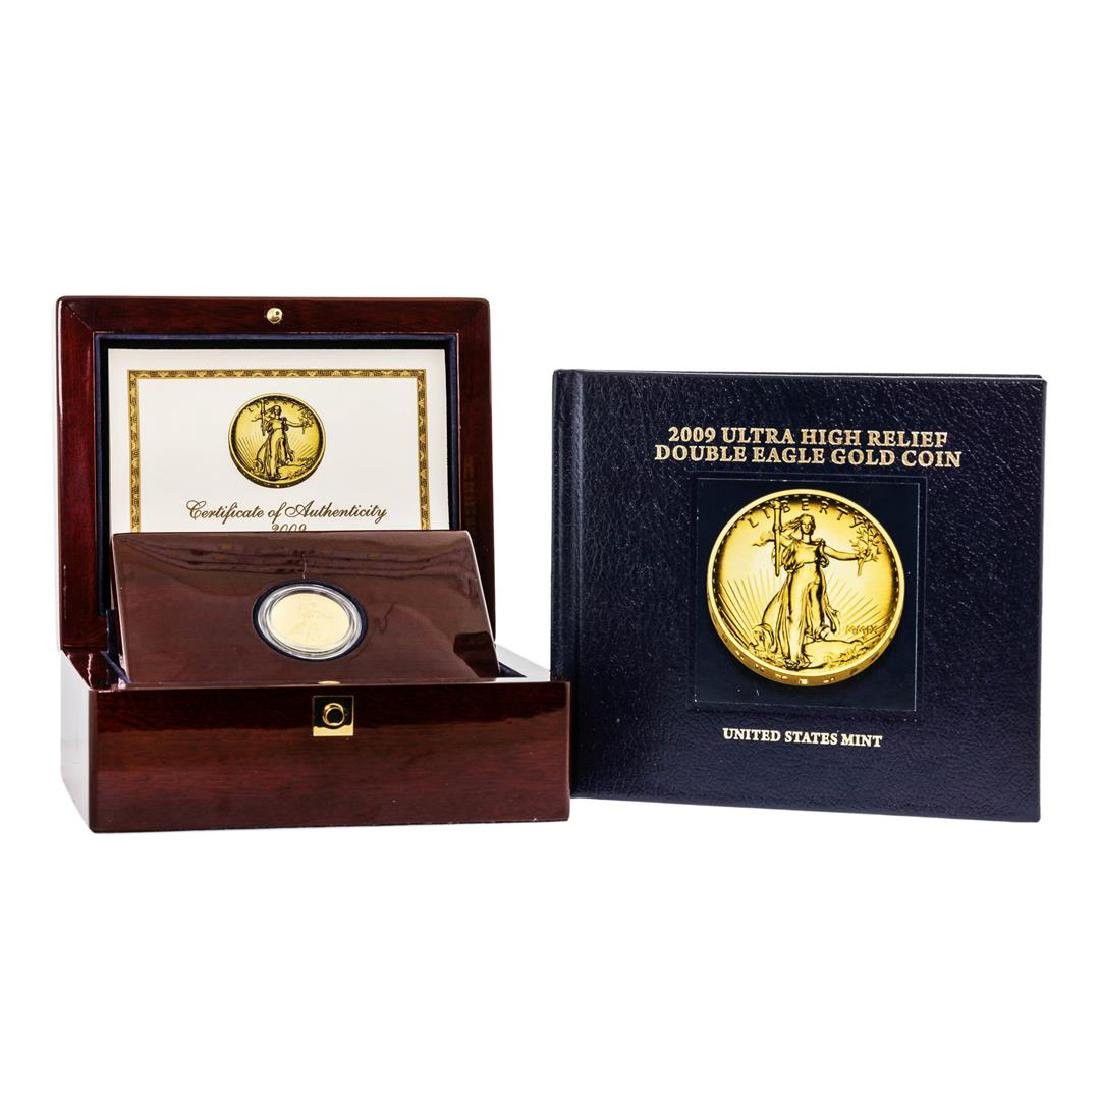 2009 $20 Ultra High Relief Double Eagle Gold Coin w/Box